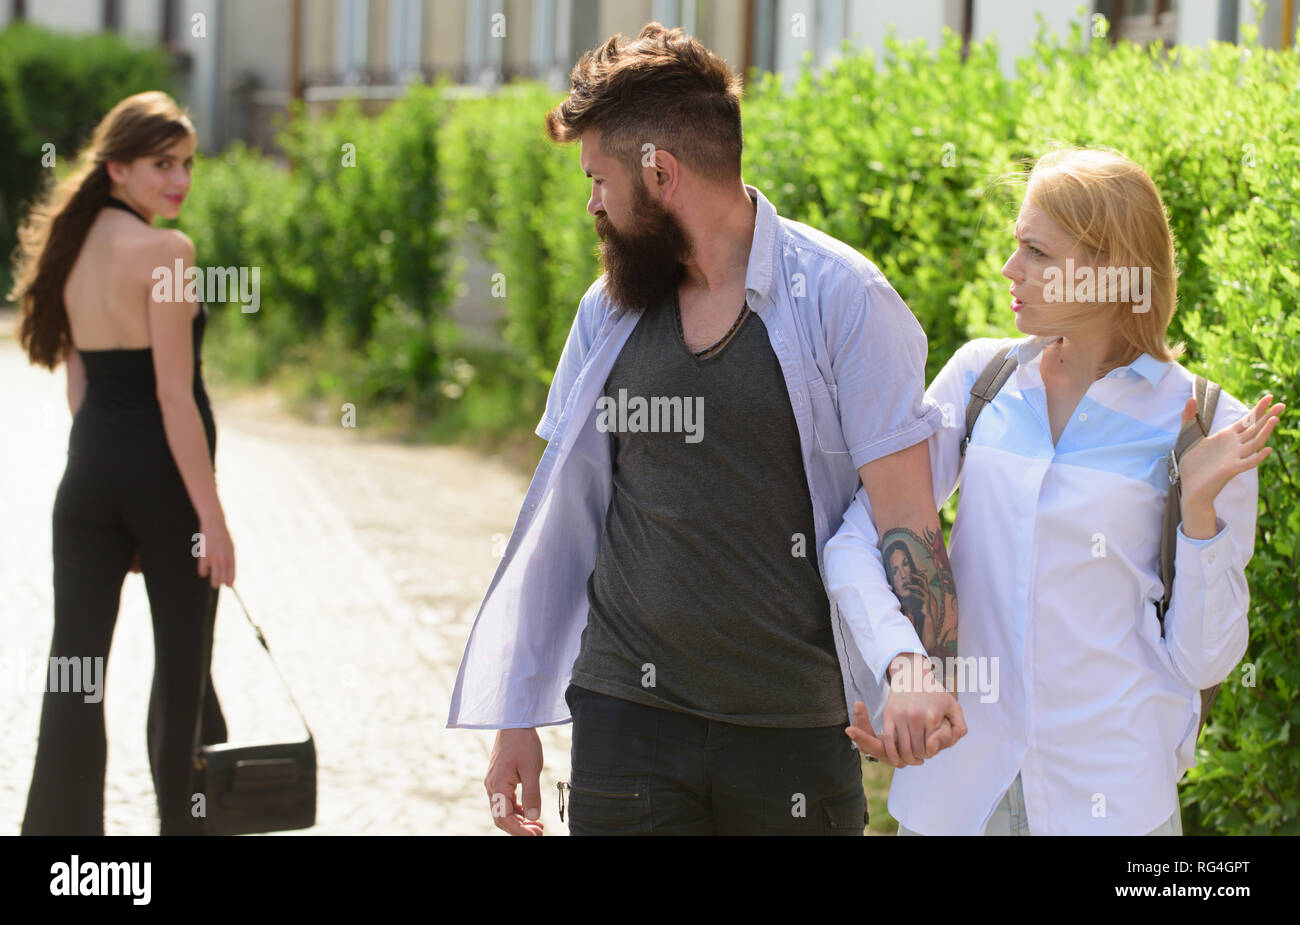 Woman chaser. Man cheating his wife or girlfriend. Love triangle and threesome. Bearded man looking at other girl. Hipster choosing between two women - Stock Image